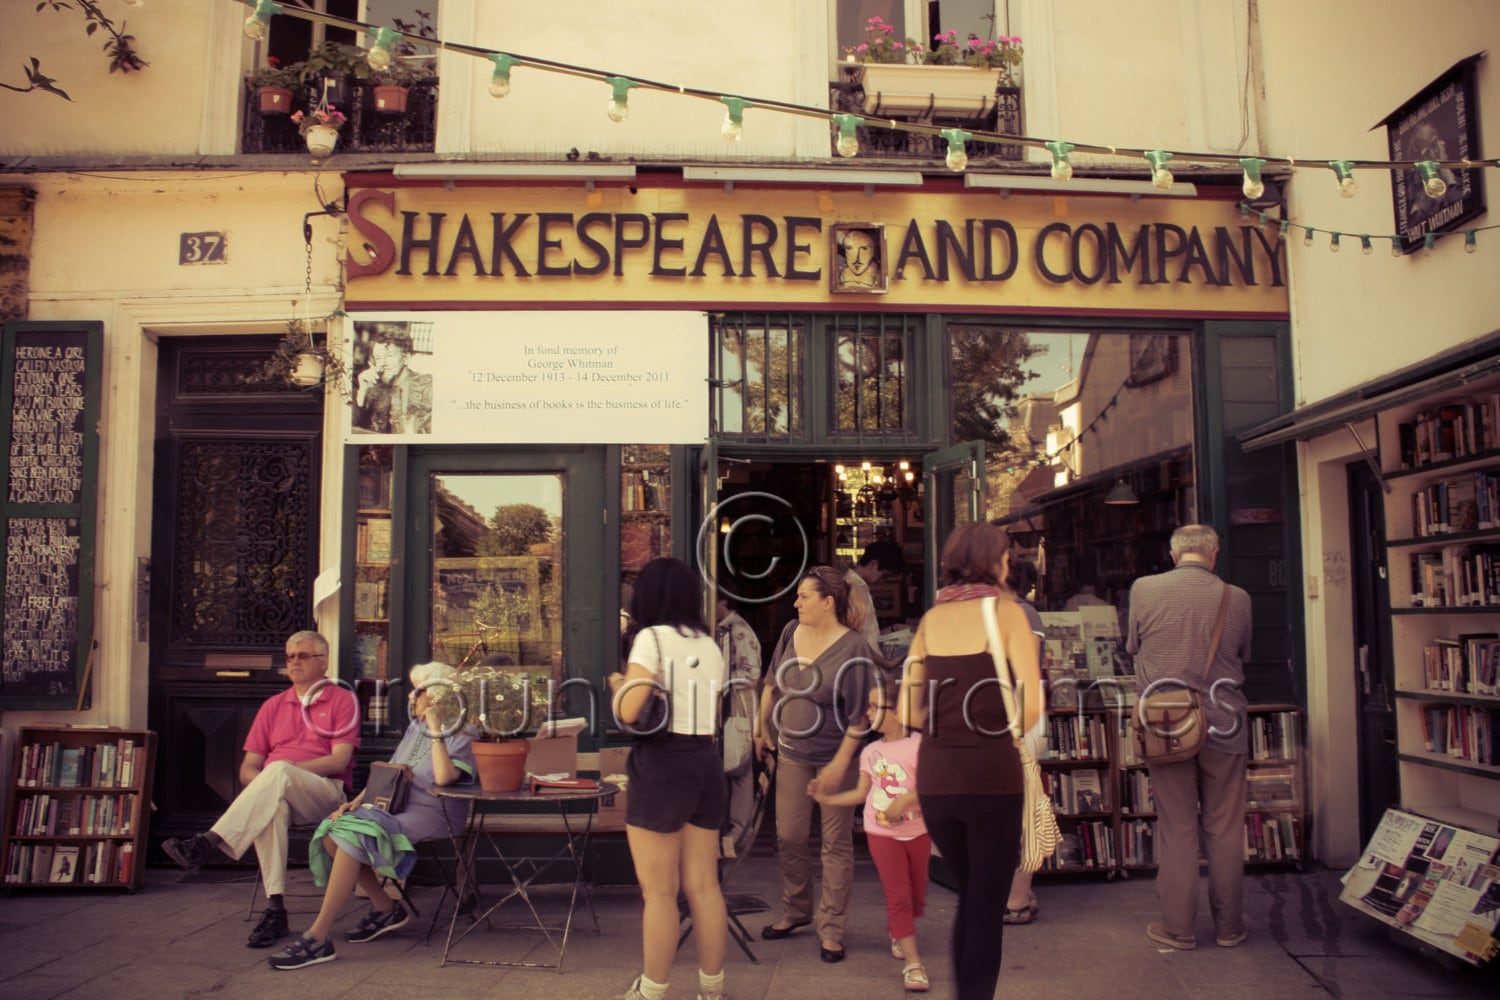 Shakespeare and Company, Paris, France 8x10 Print- Travel Photography